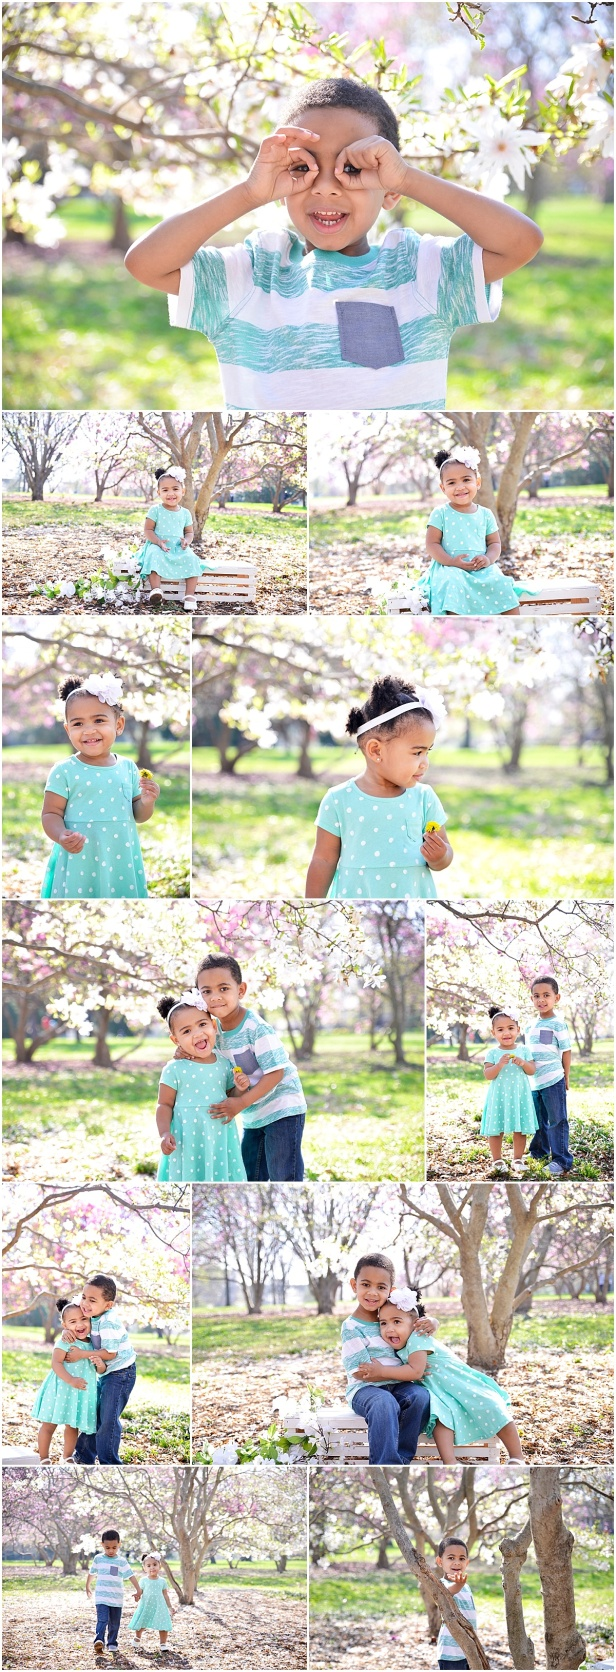 Goodale Park Spring Mini Photography session